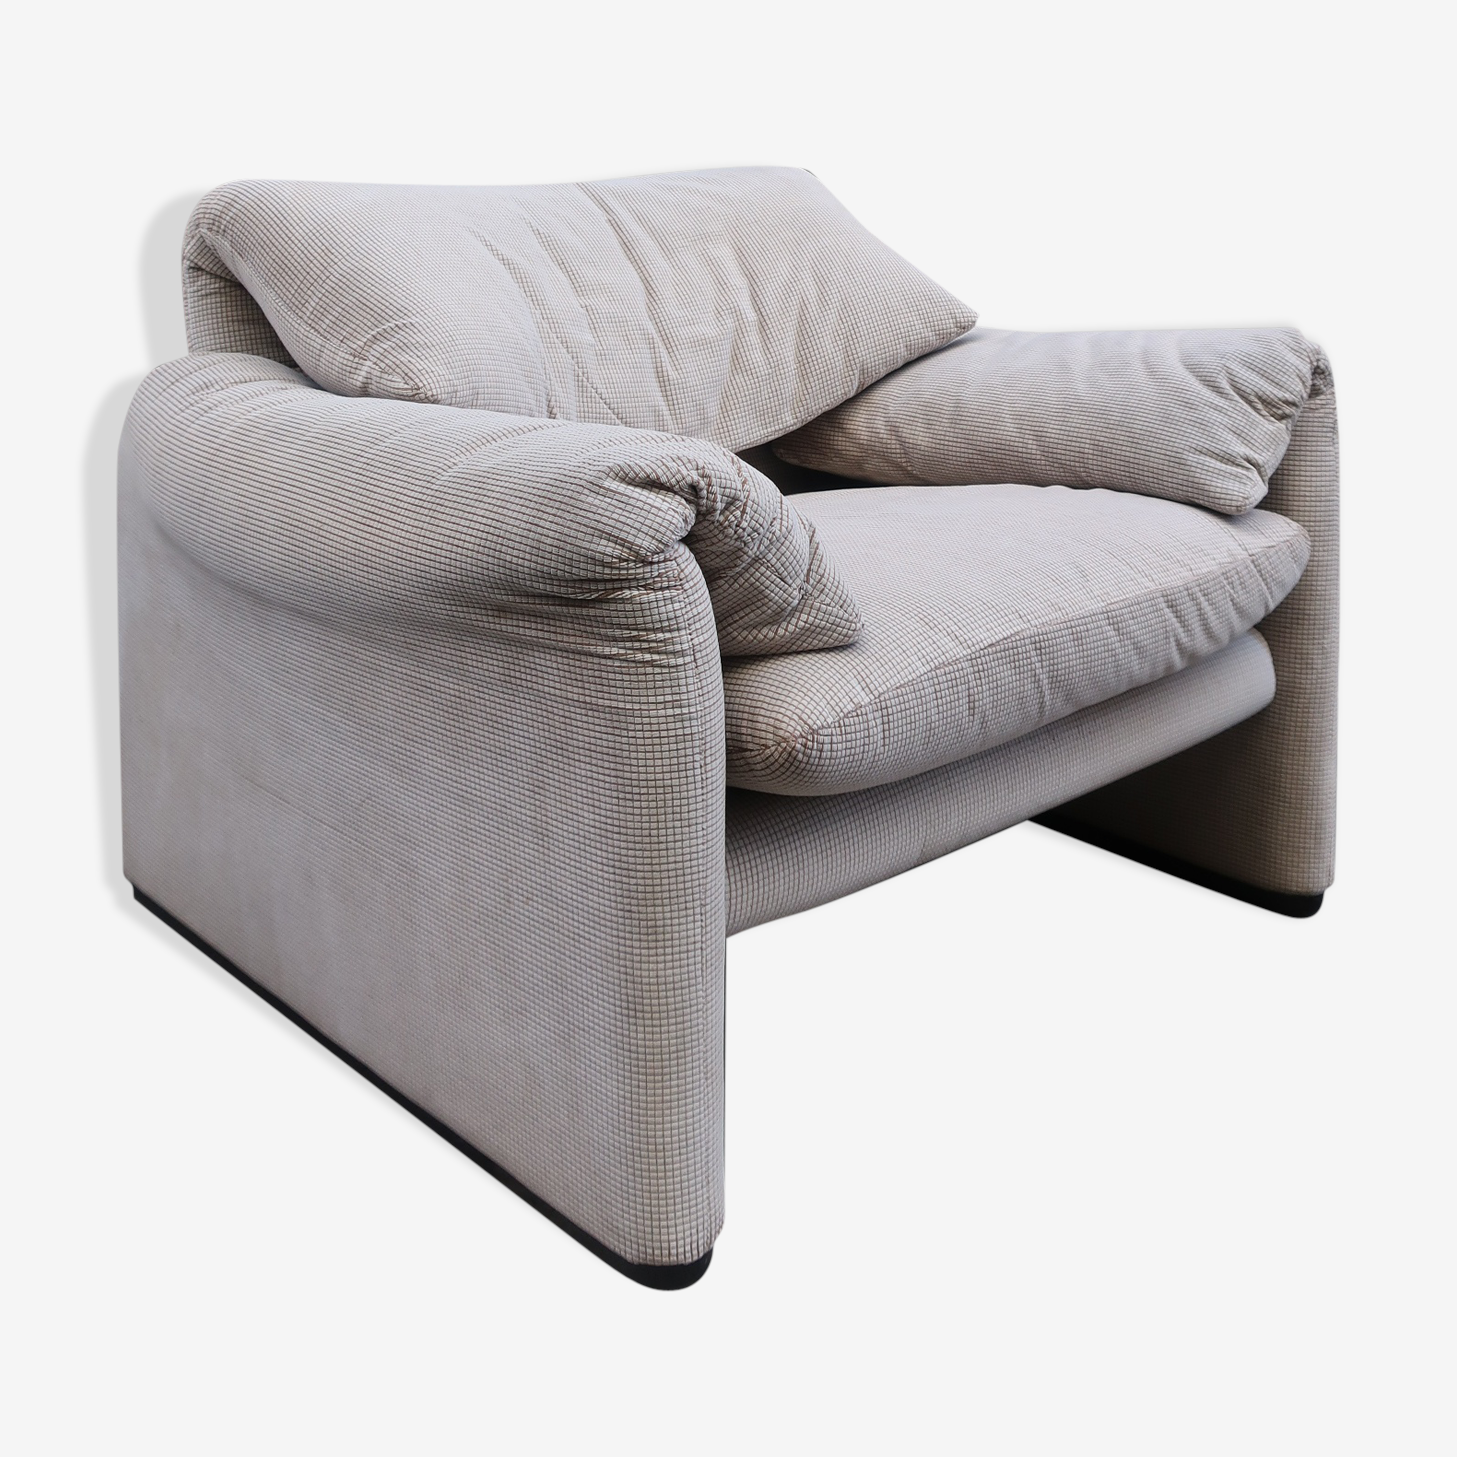 Chair Maralunga of Cassina, edition of 80s